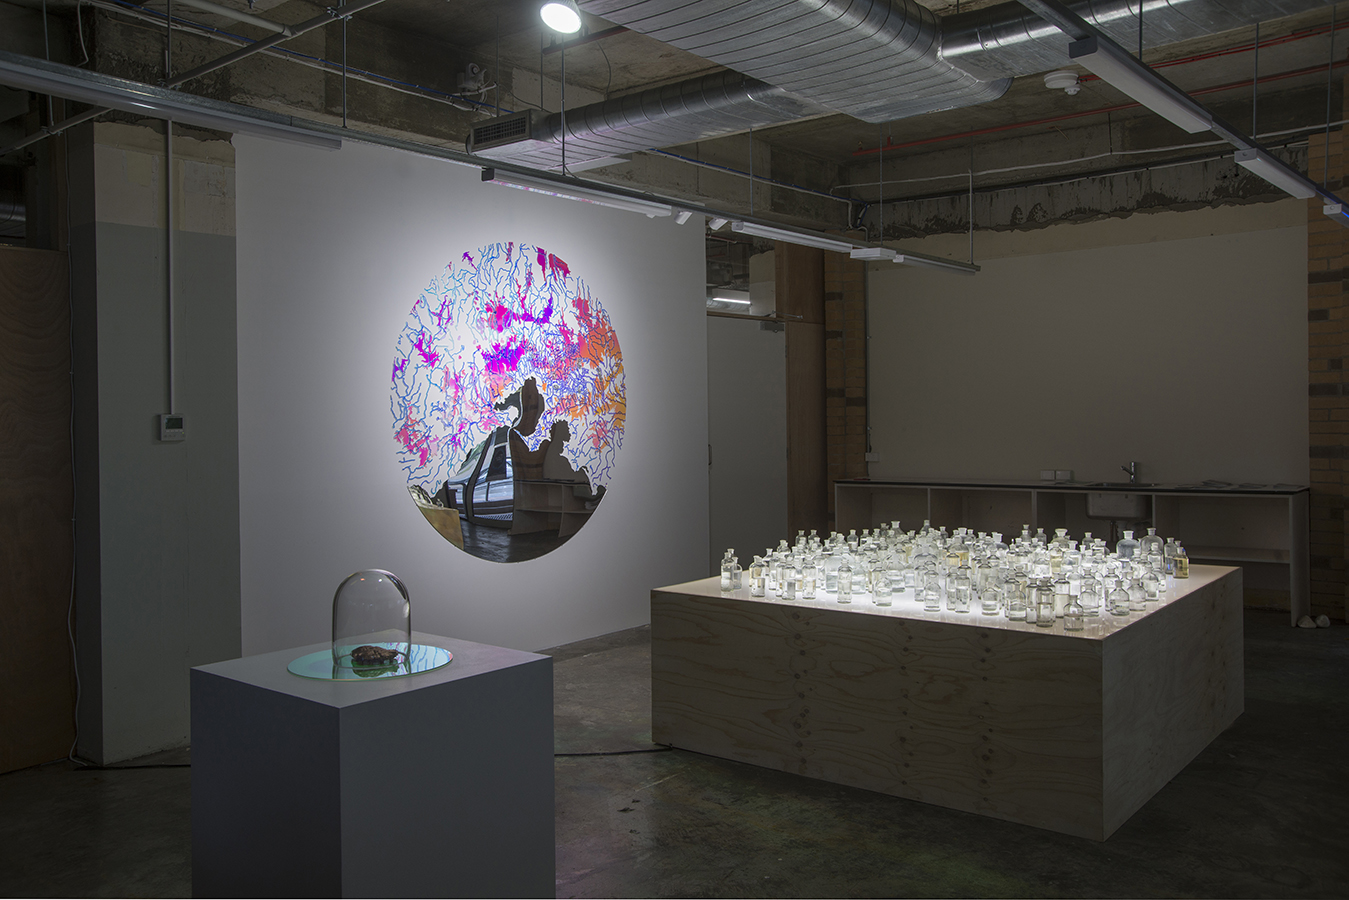 The Catchments Project - Final Installation view Artworks Shown - Wall - Making Water Visible. Light Box - The Water Harvest. Plinth - Getting Busy - Debbie Symons & Jasmine Targett